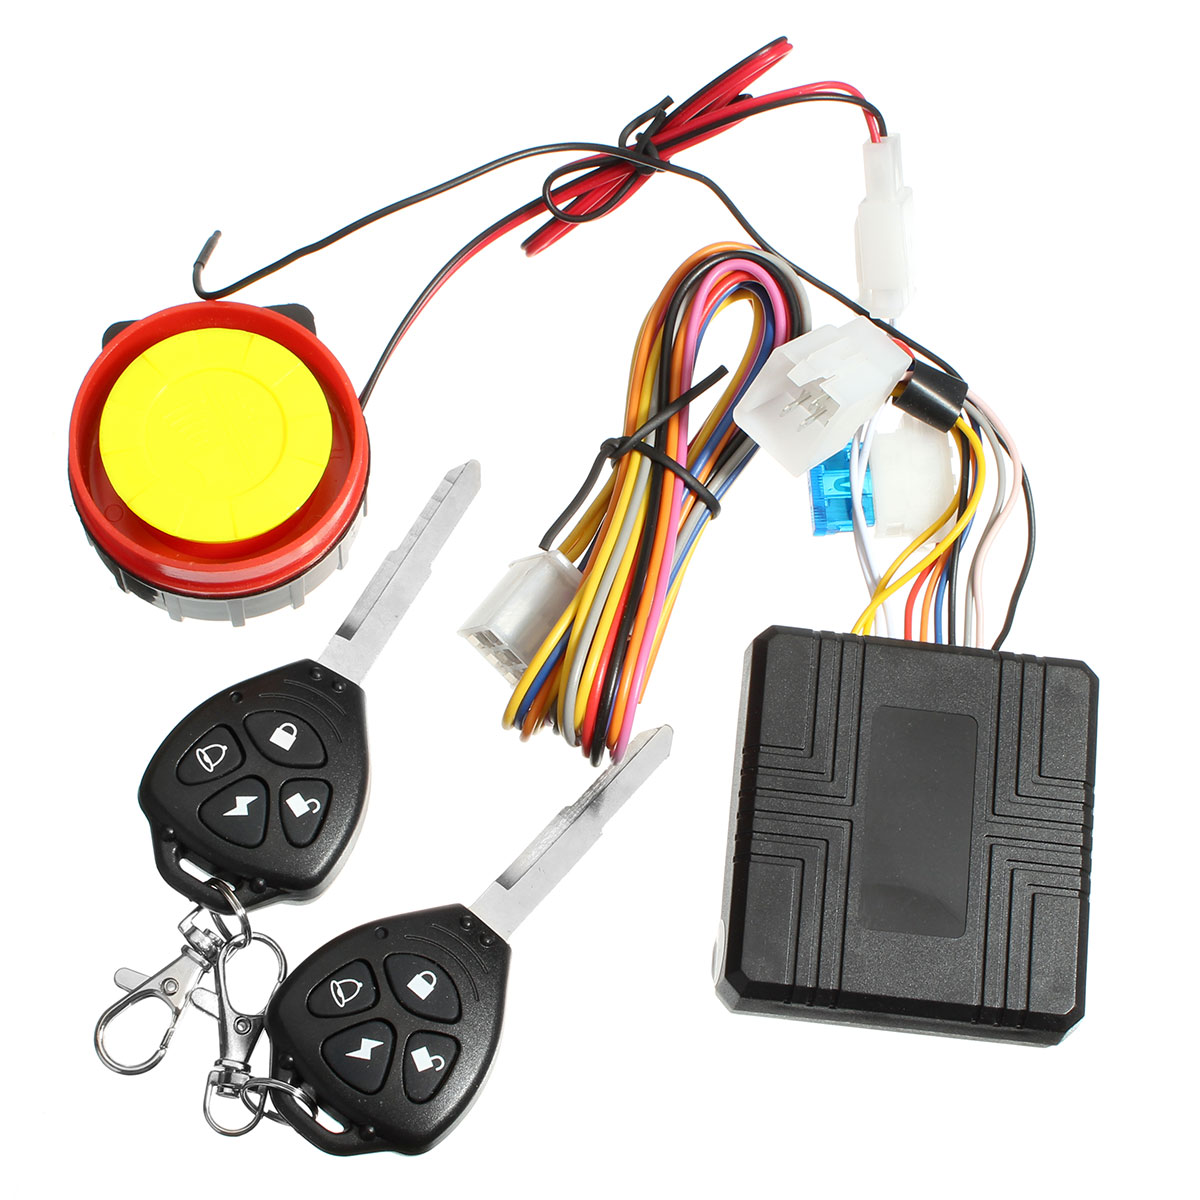 Universal Alarm Systems For Motorcycle Anti-Theft Protection Remote Activation Motorbike Alarm Accessories With Remote Control